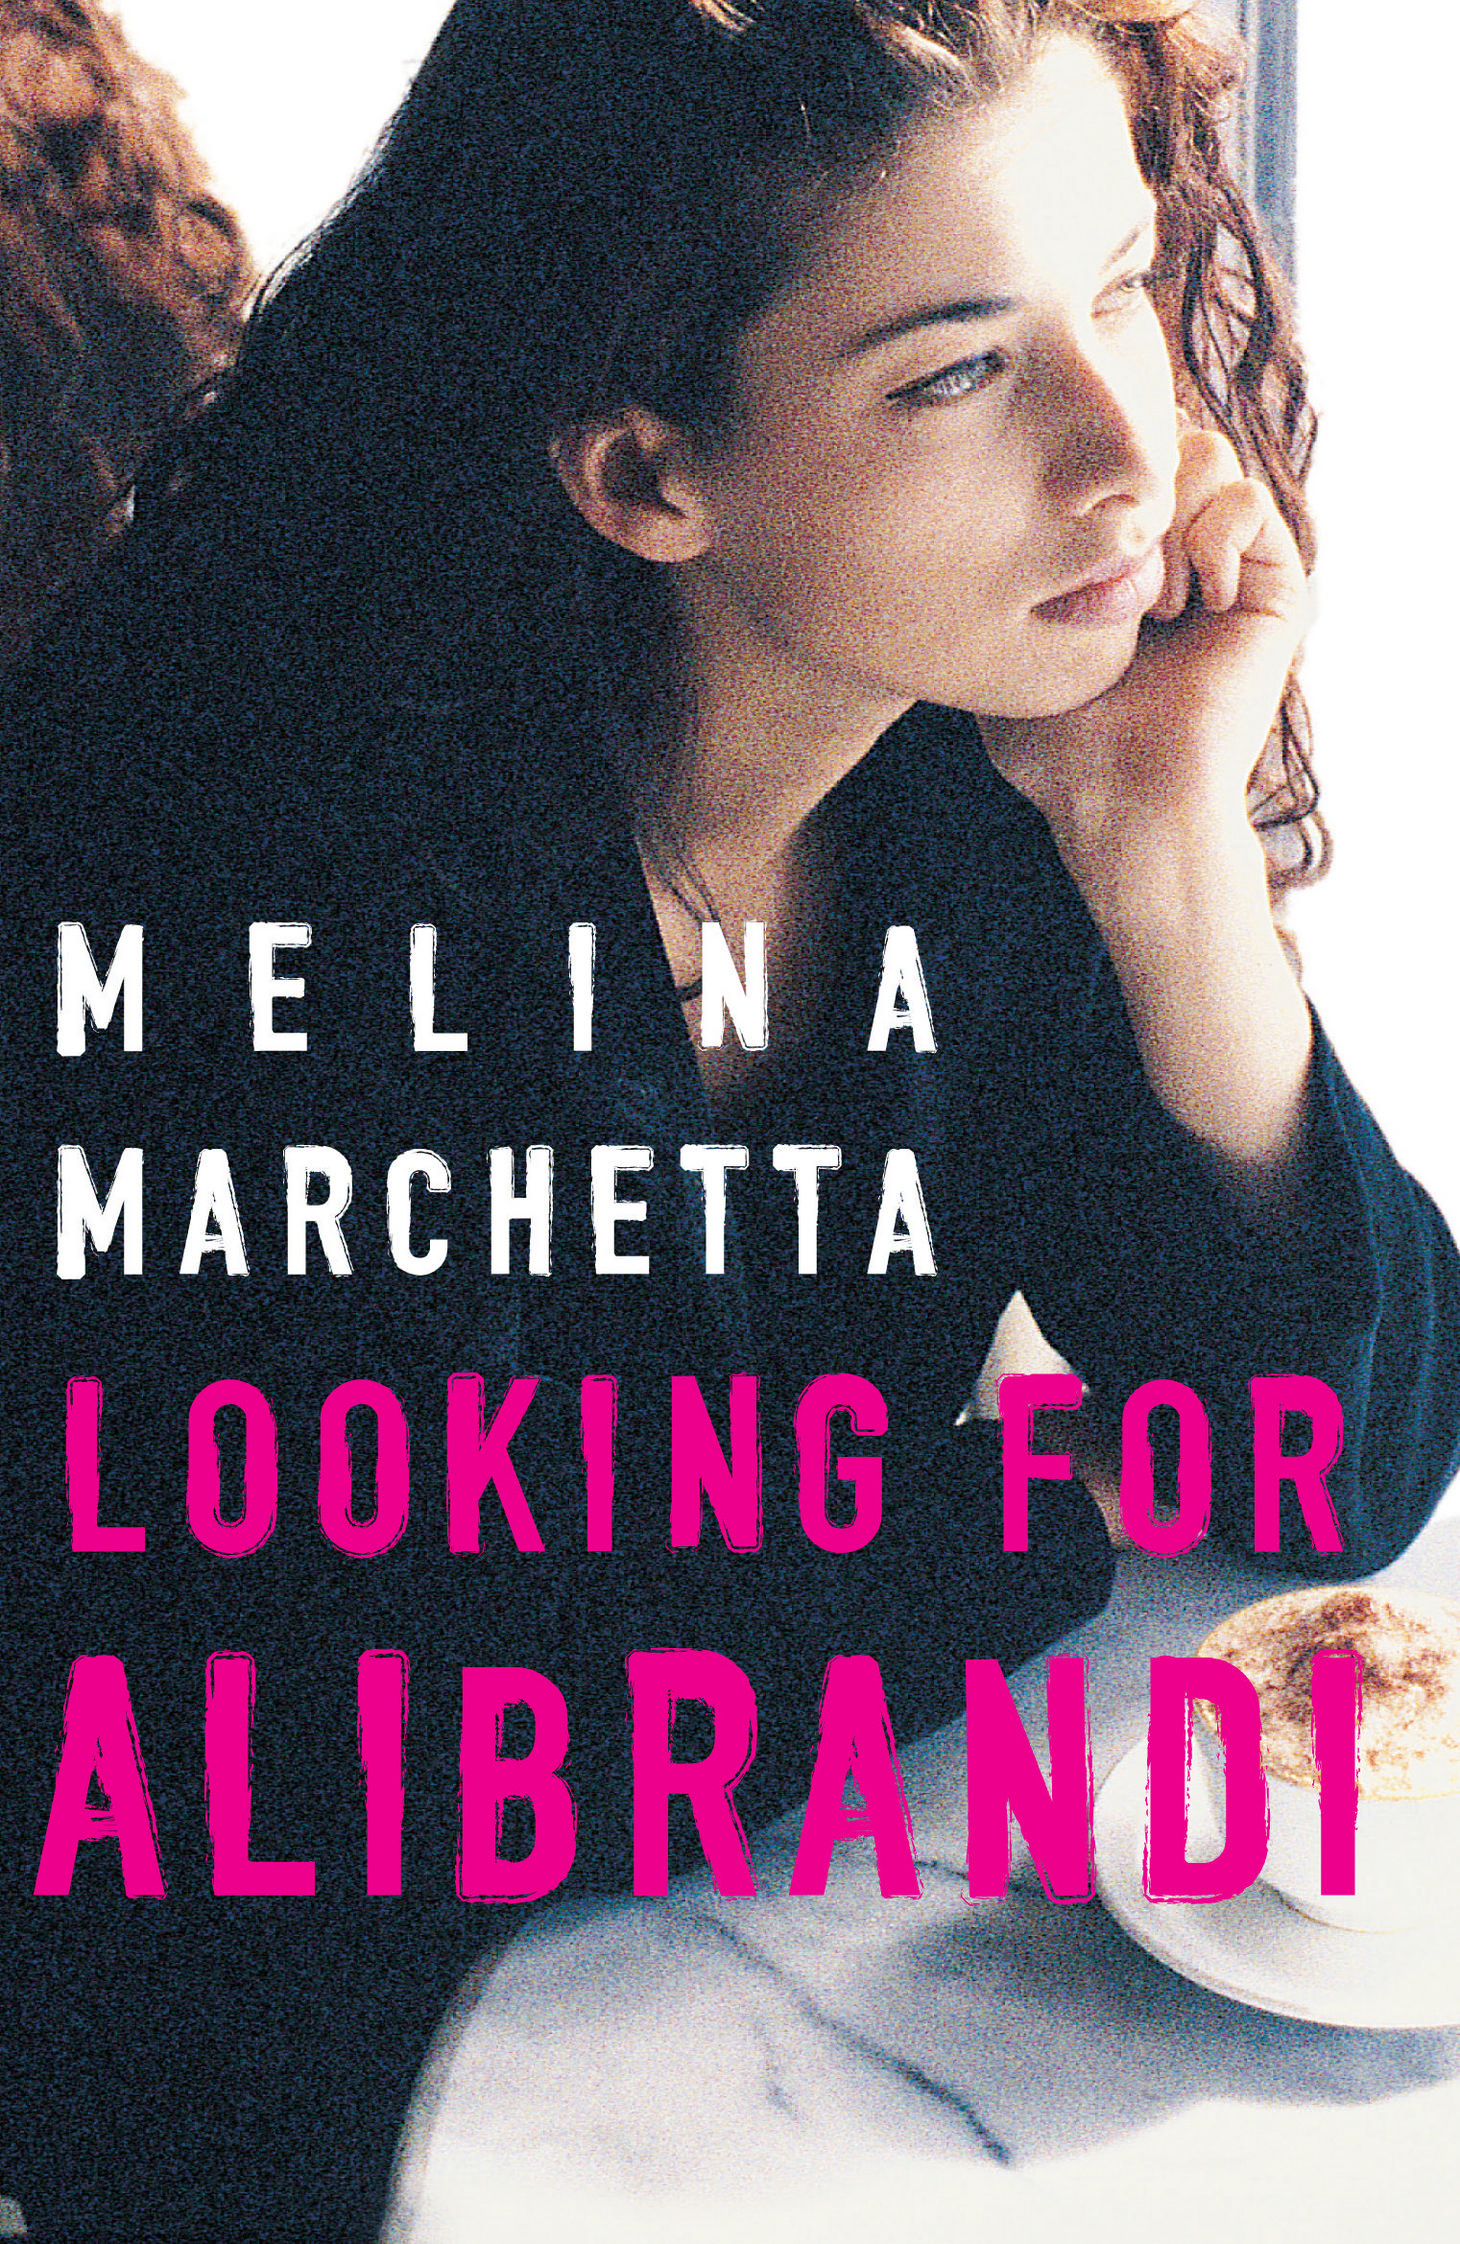 Looking for alibrandi book review essays